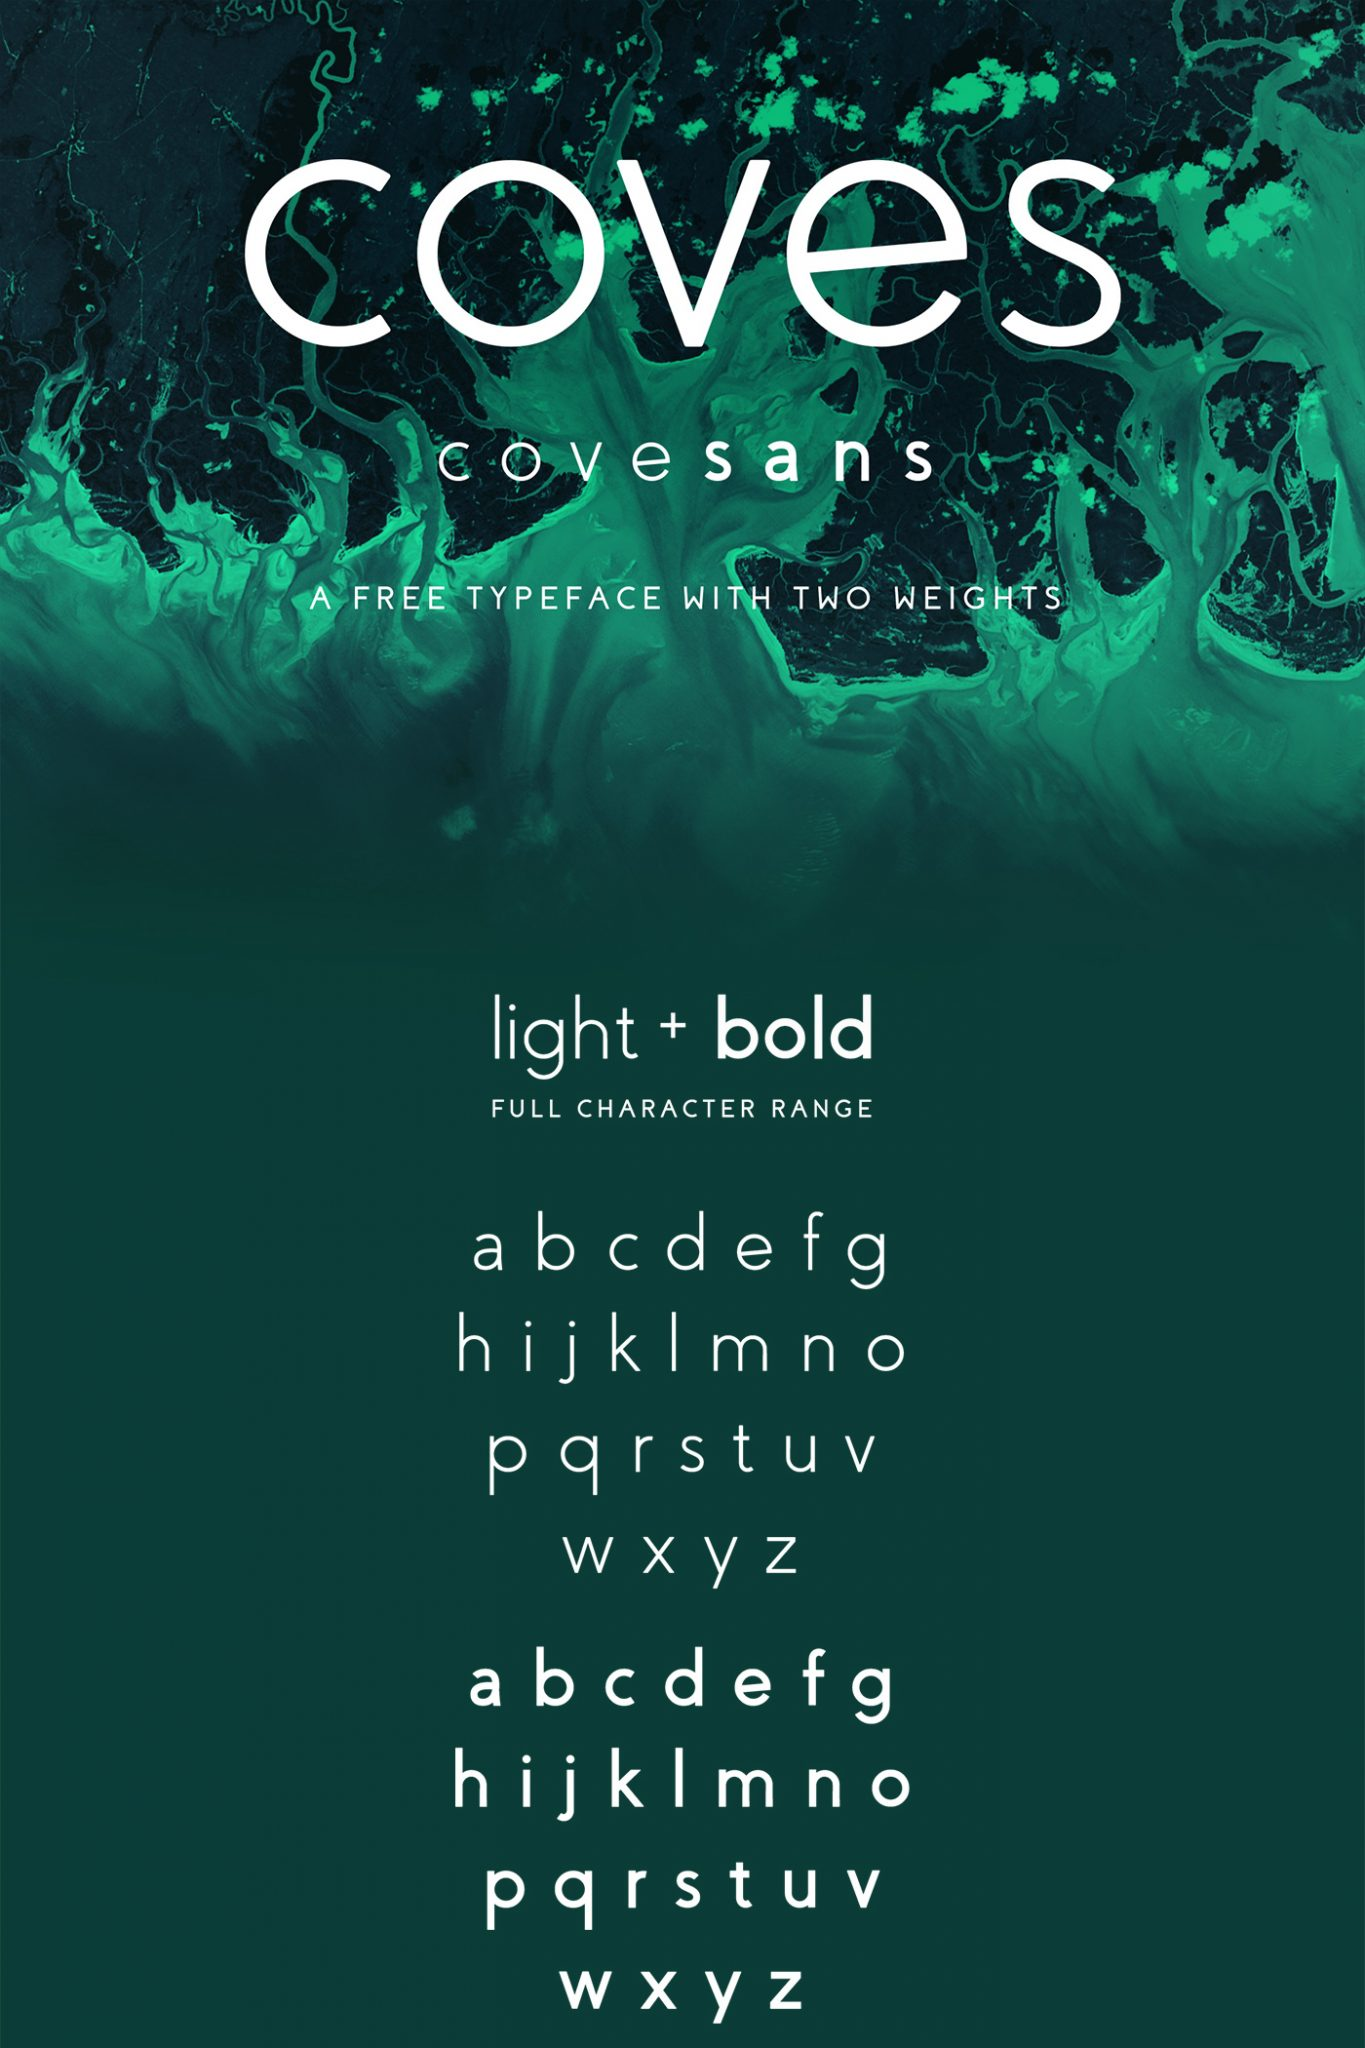 Coves Free Typeface - Modern Serif Font Free Download